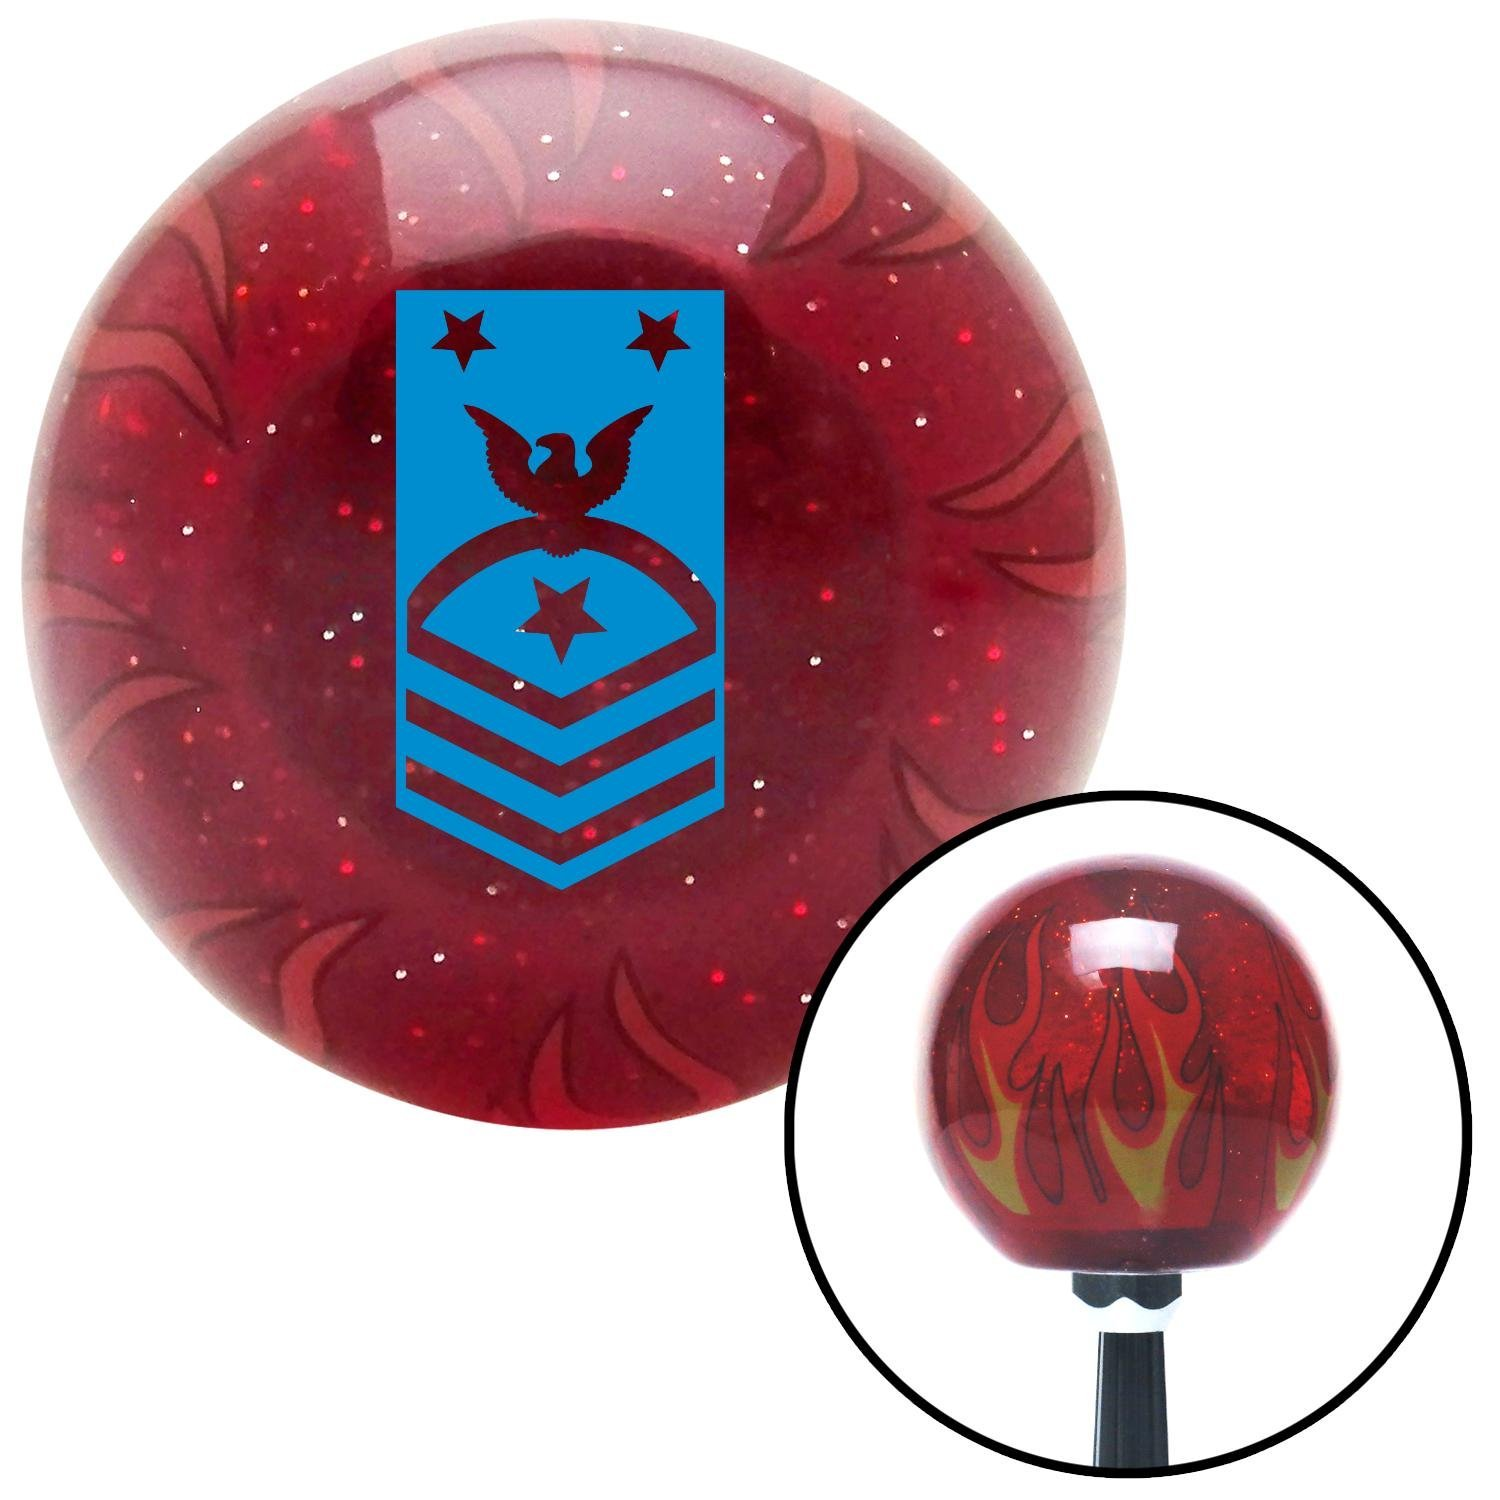 American Shifter 241495 Red Flame Metal Flake Shift Knob with M16 x 1.5 Insert Blue Force or Fleet Command Master Chief Petty Officer